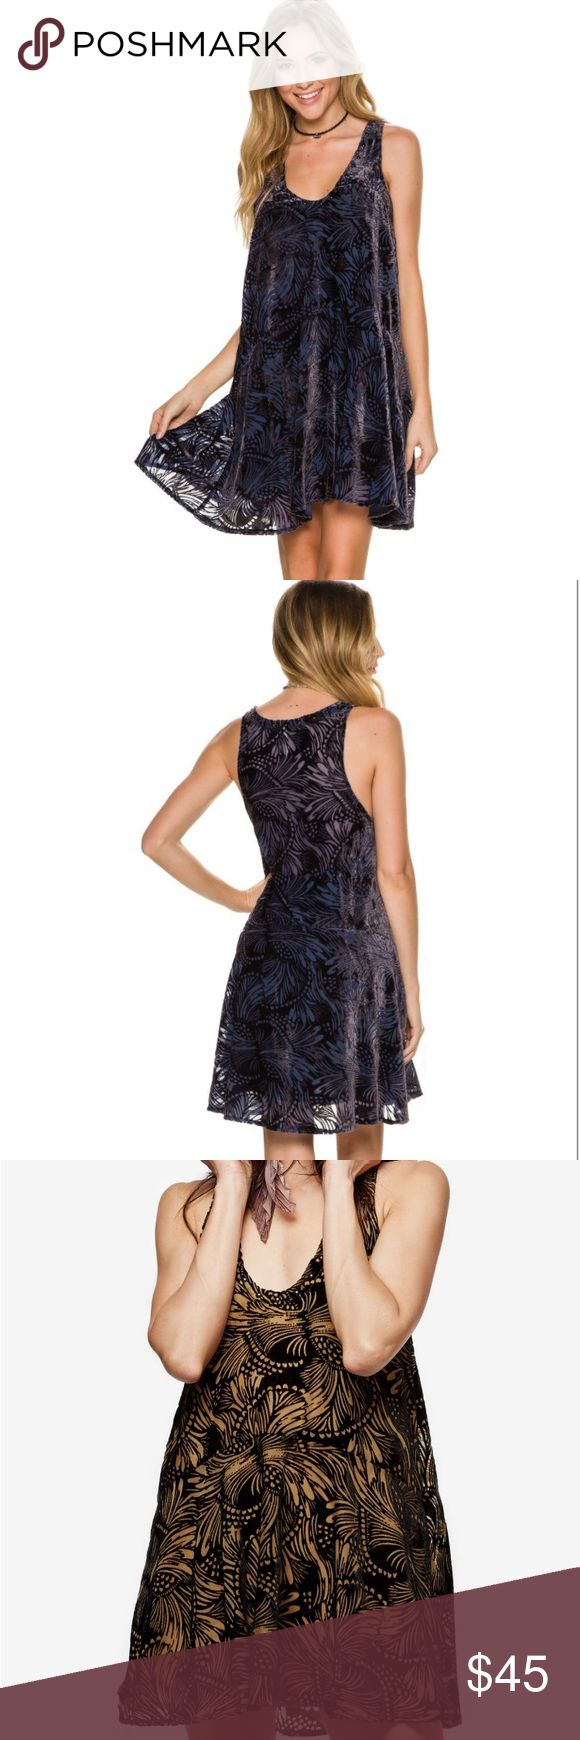 LOW PRICE NWT Free People Ellie Burnout Dress Brand new with tags Ellie burnout dress in color black super cute dress! Free People Dresses